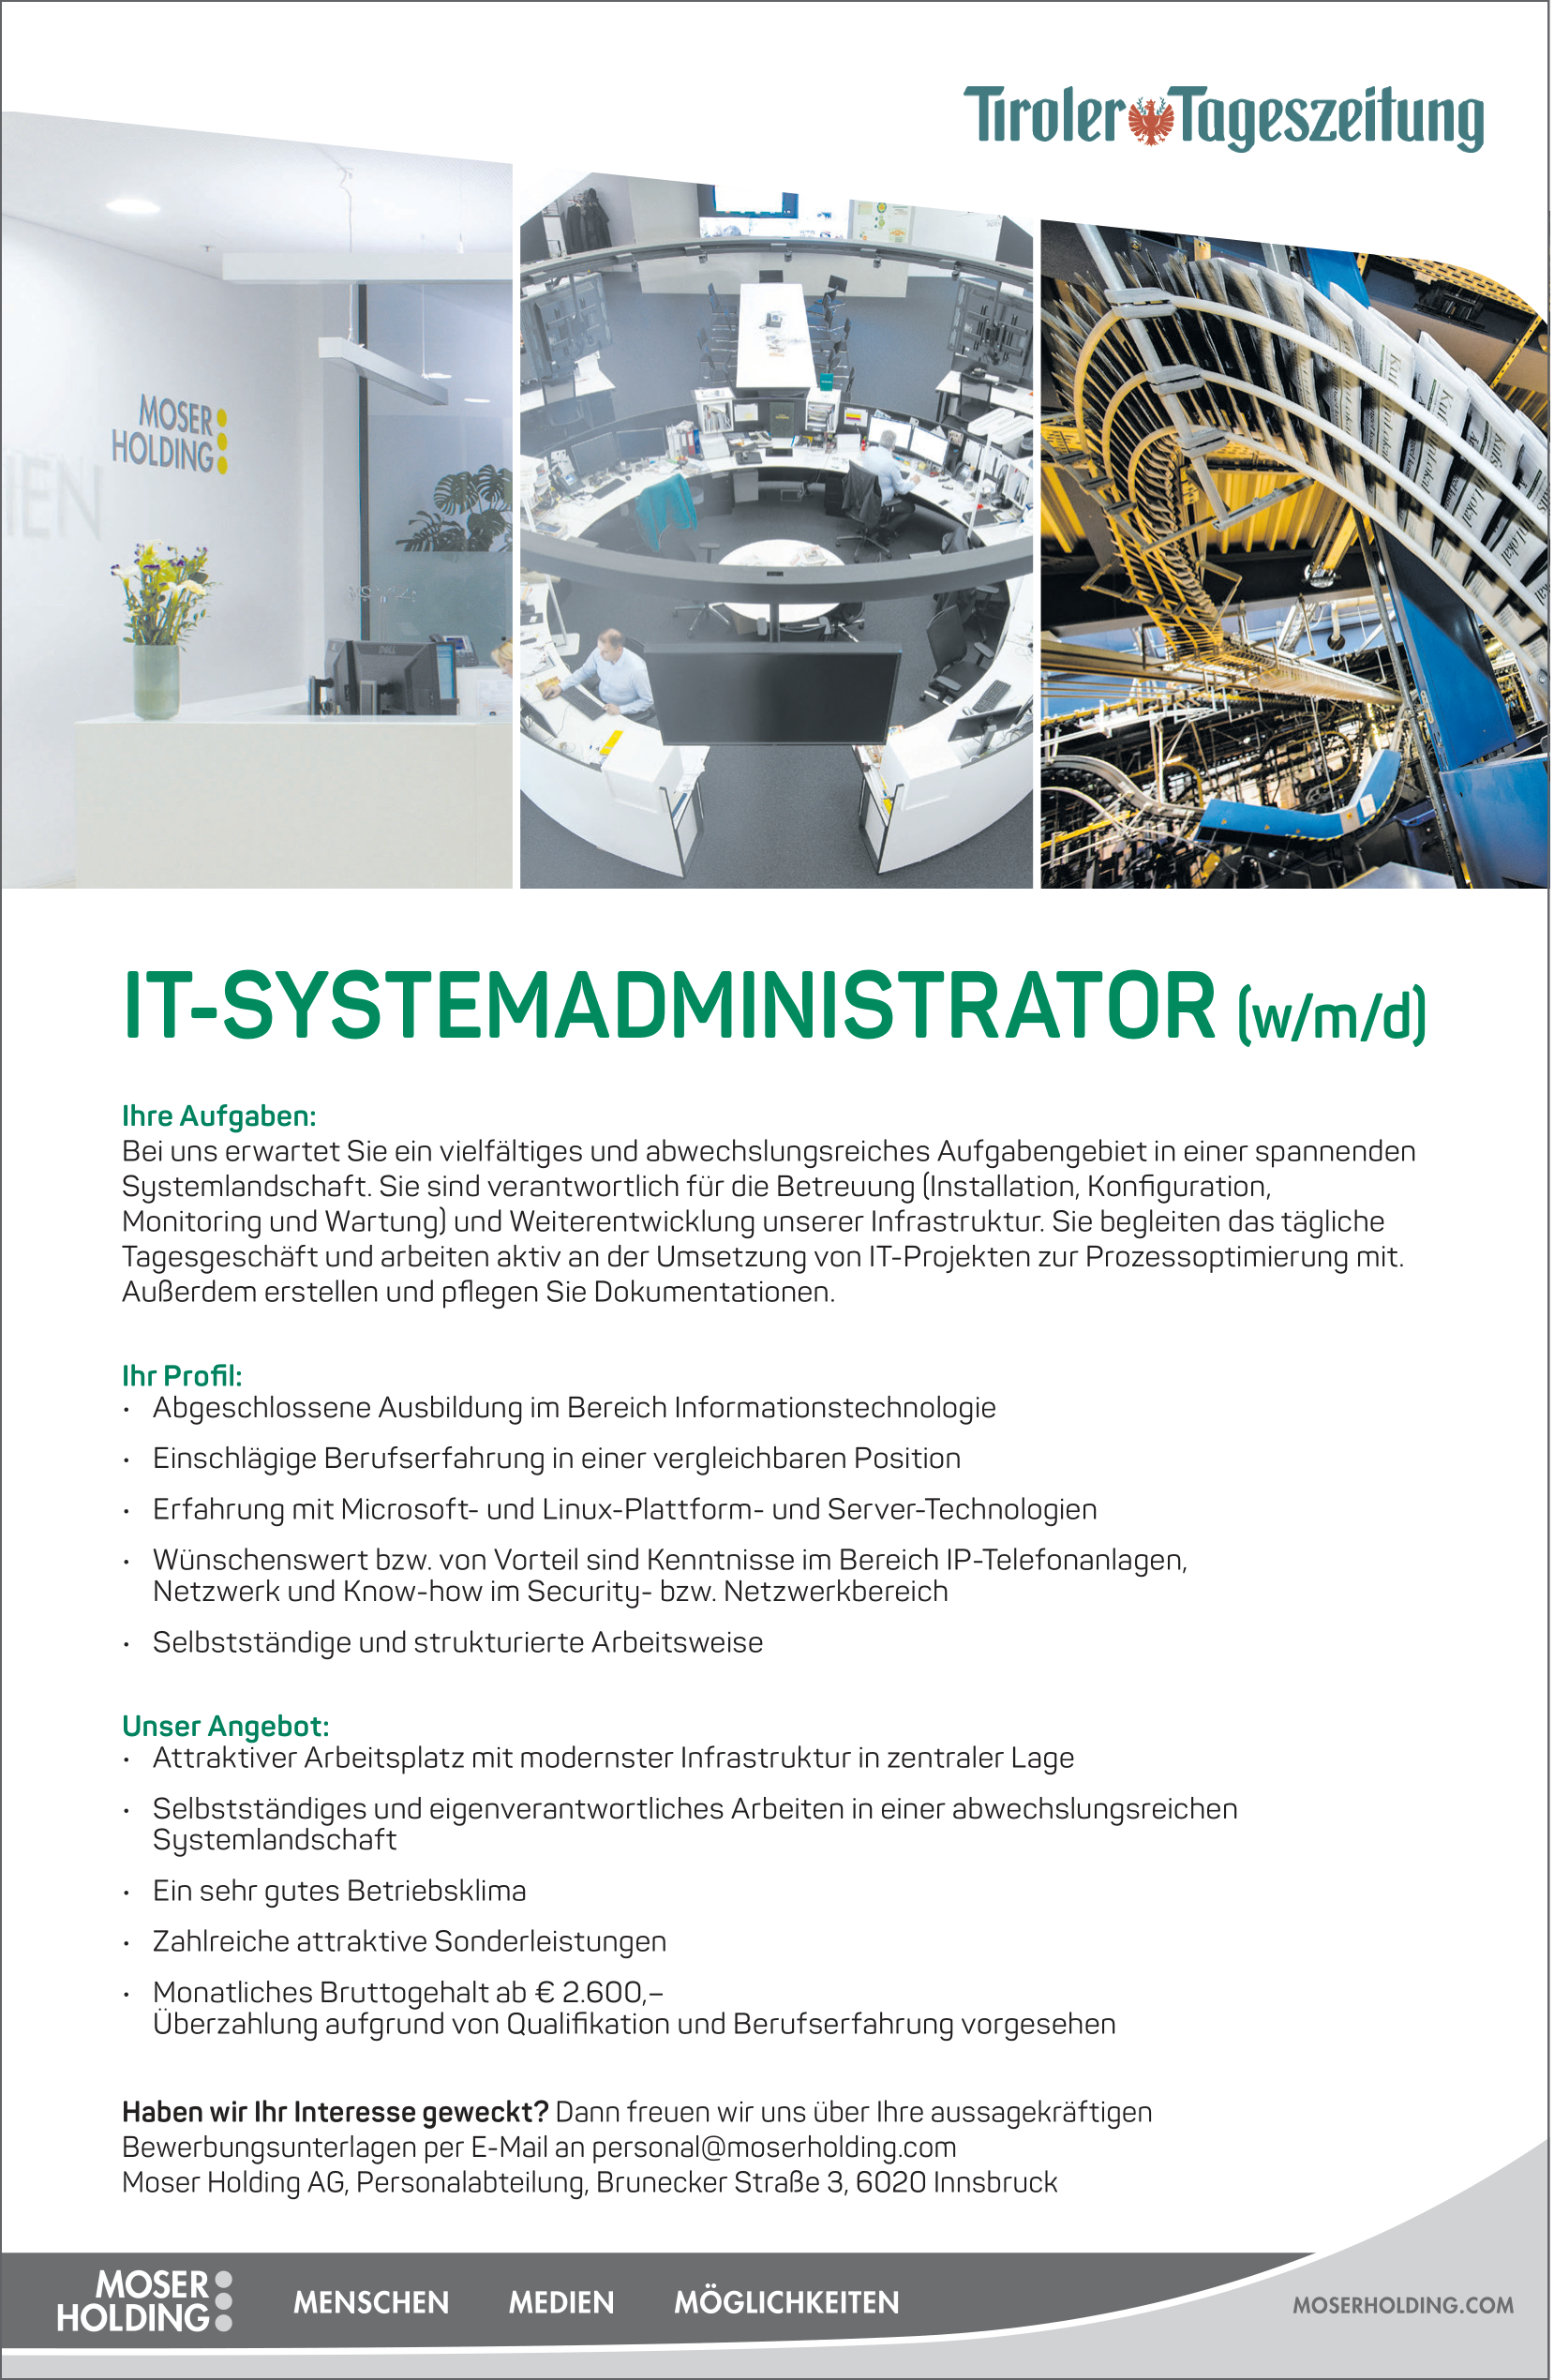 IT-SYSTEMADMINISTRATOR (w/m/d)